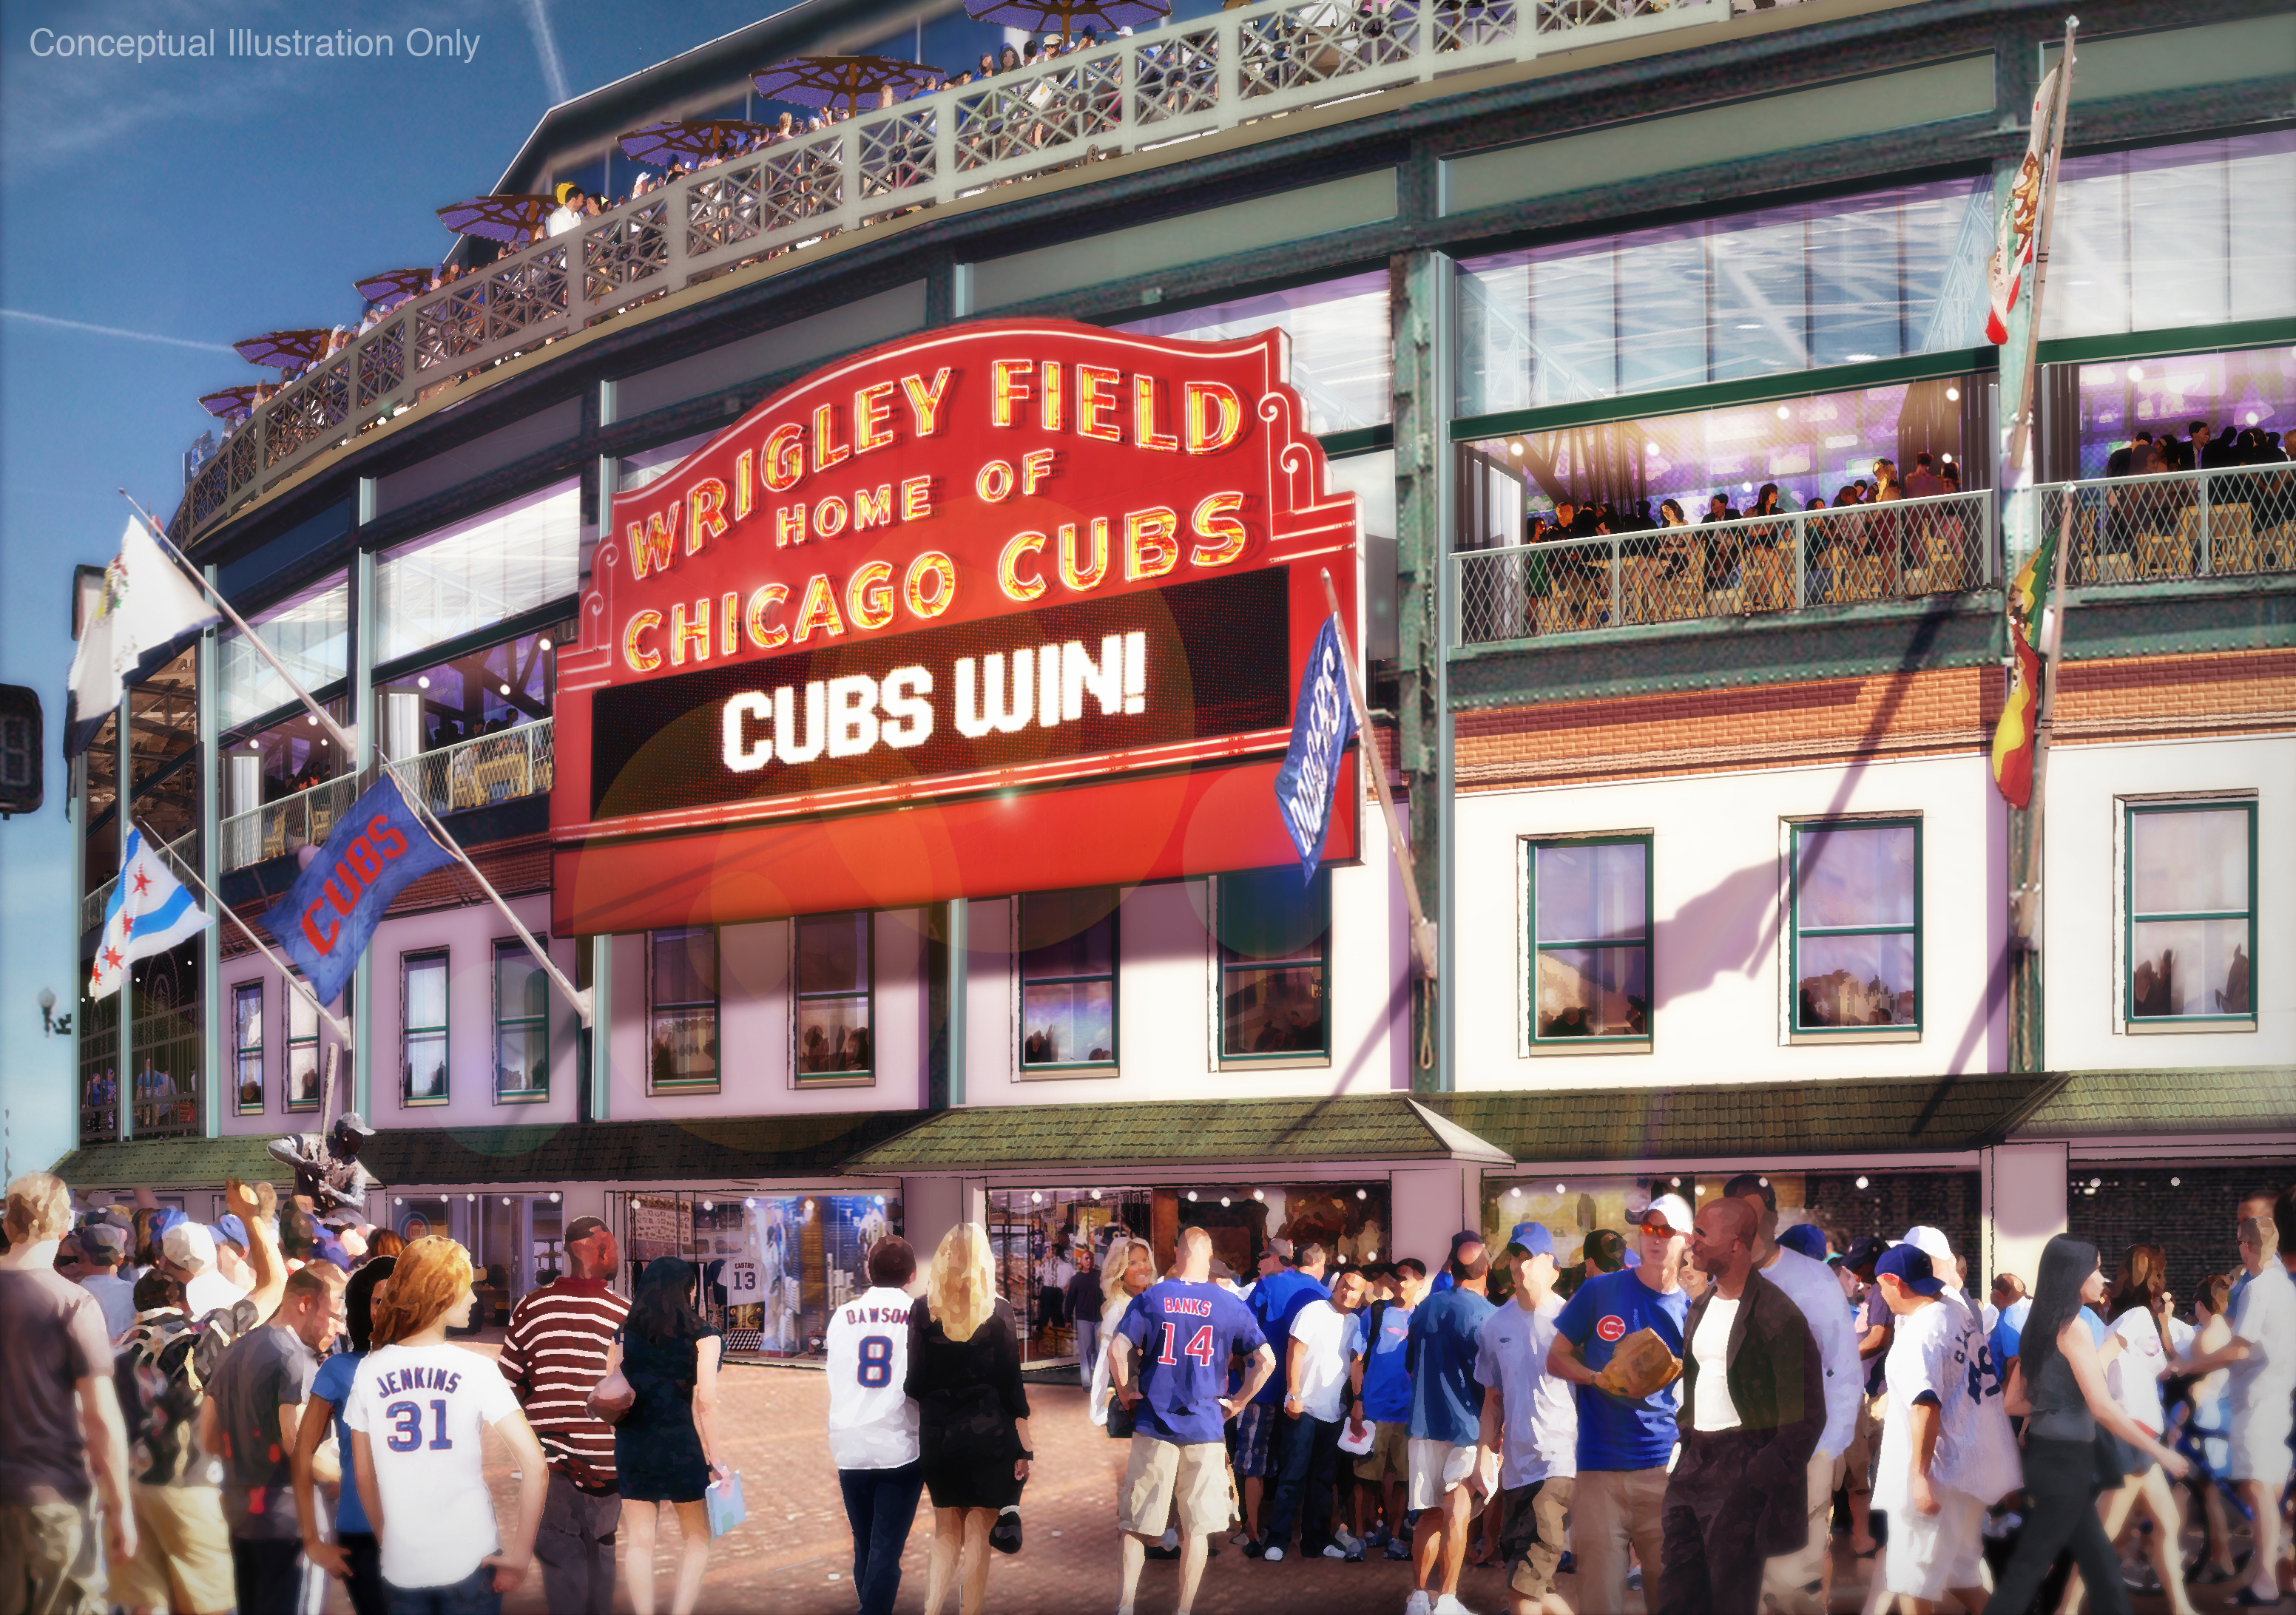 Wrigley Renovation Plans Revealed: The Overview, the Financing, and the Pictures